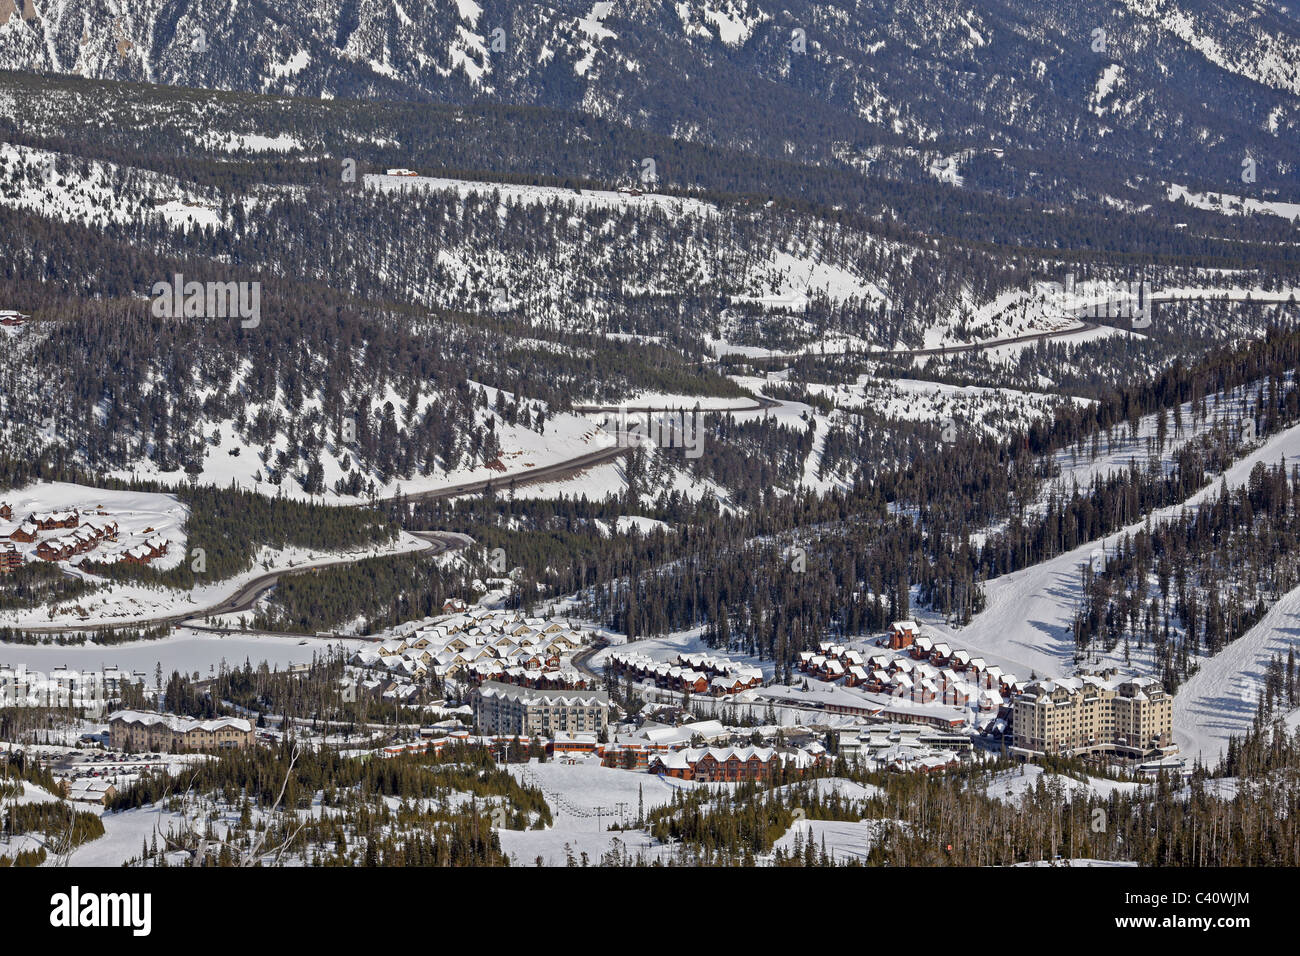 base facilities at big sky montana, one of the largest ski resorts